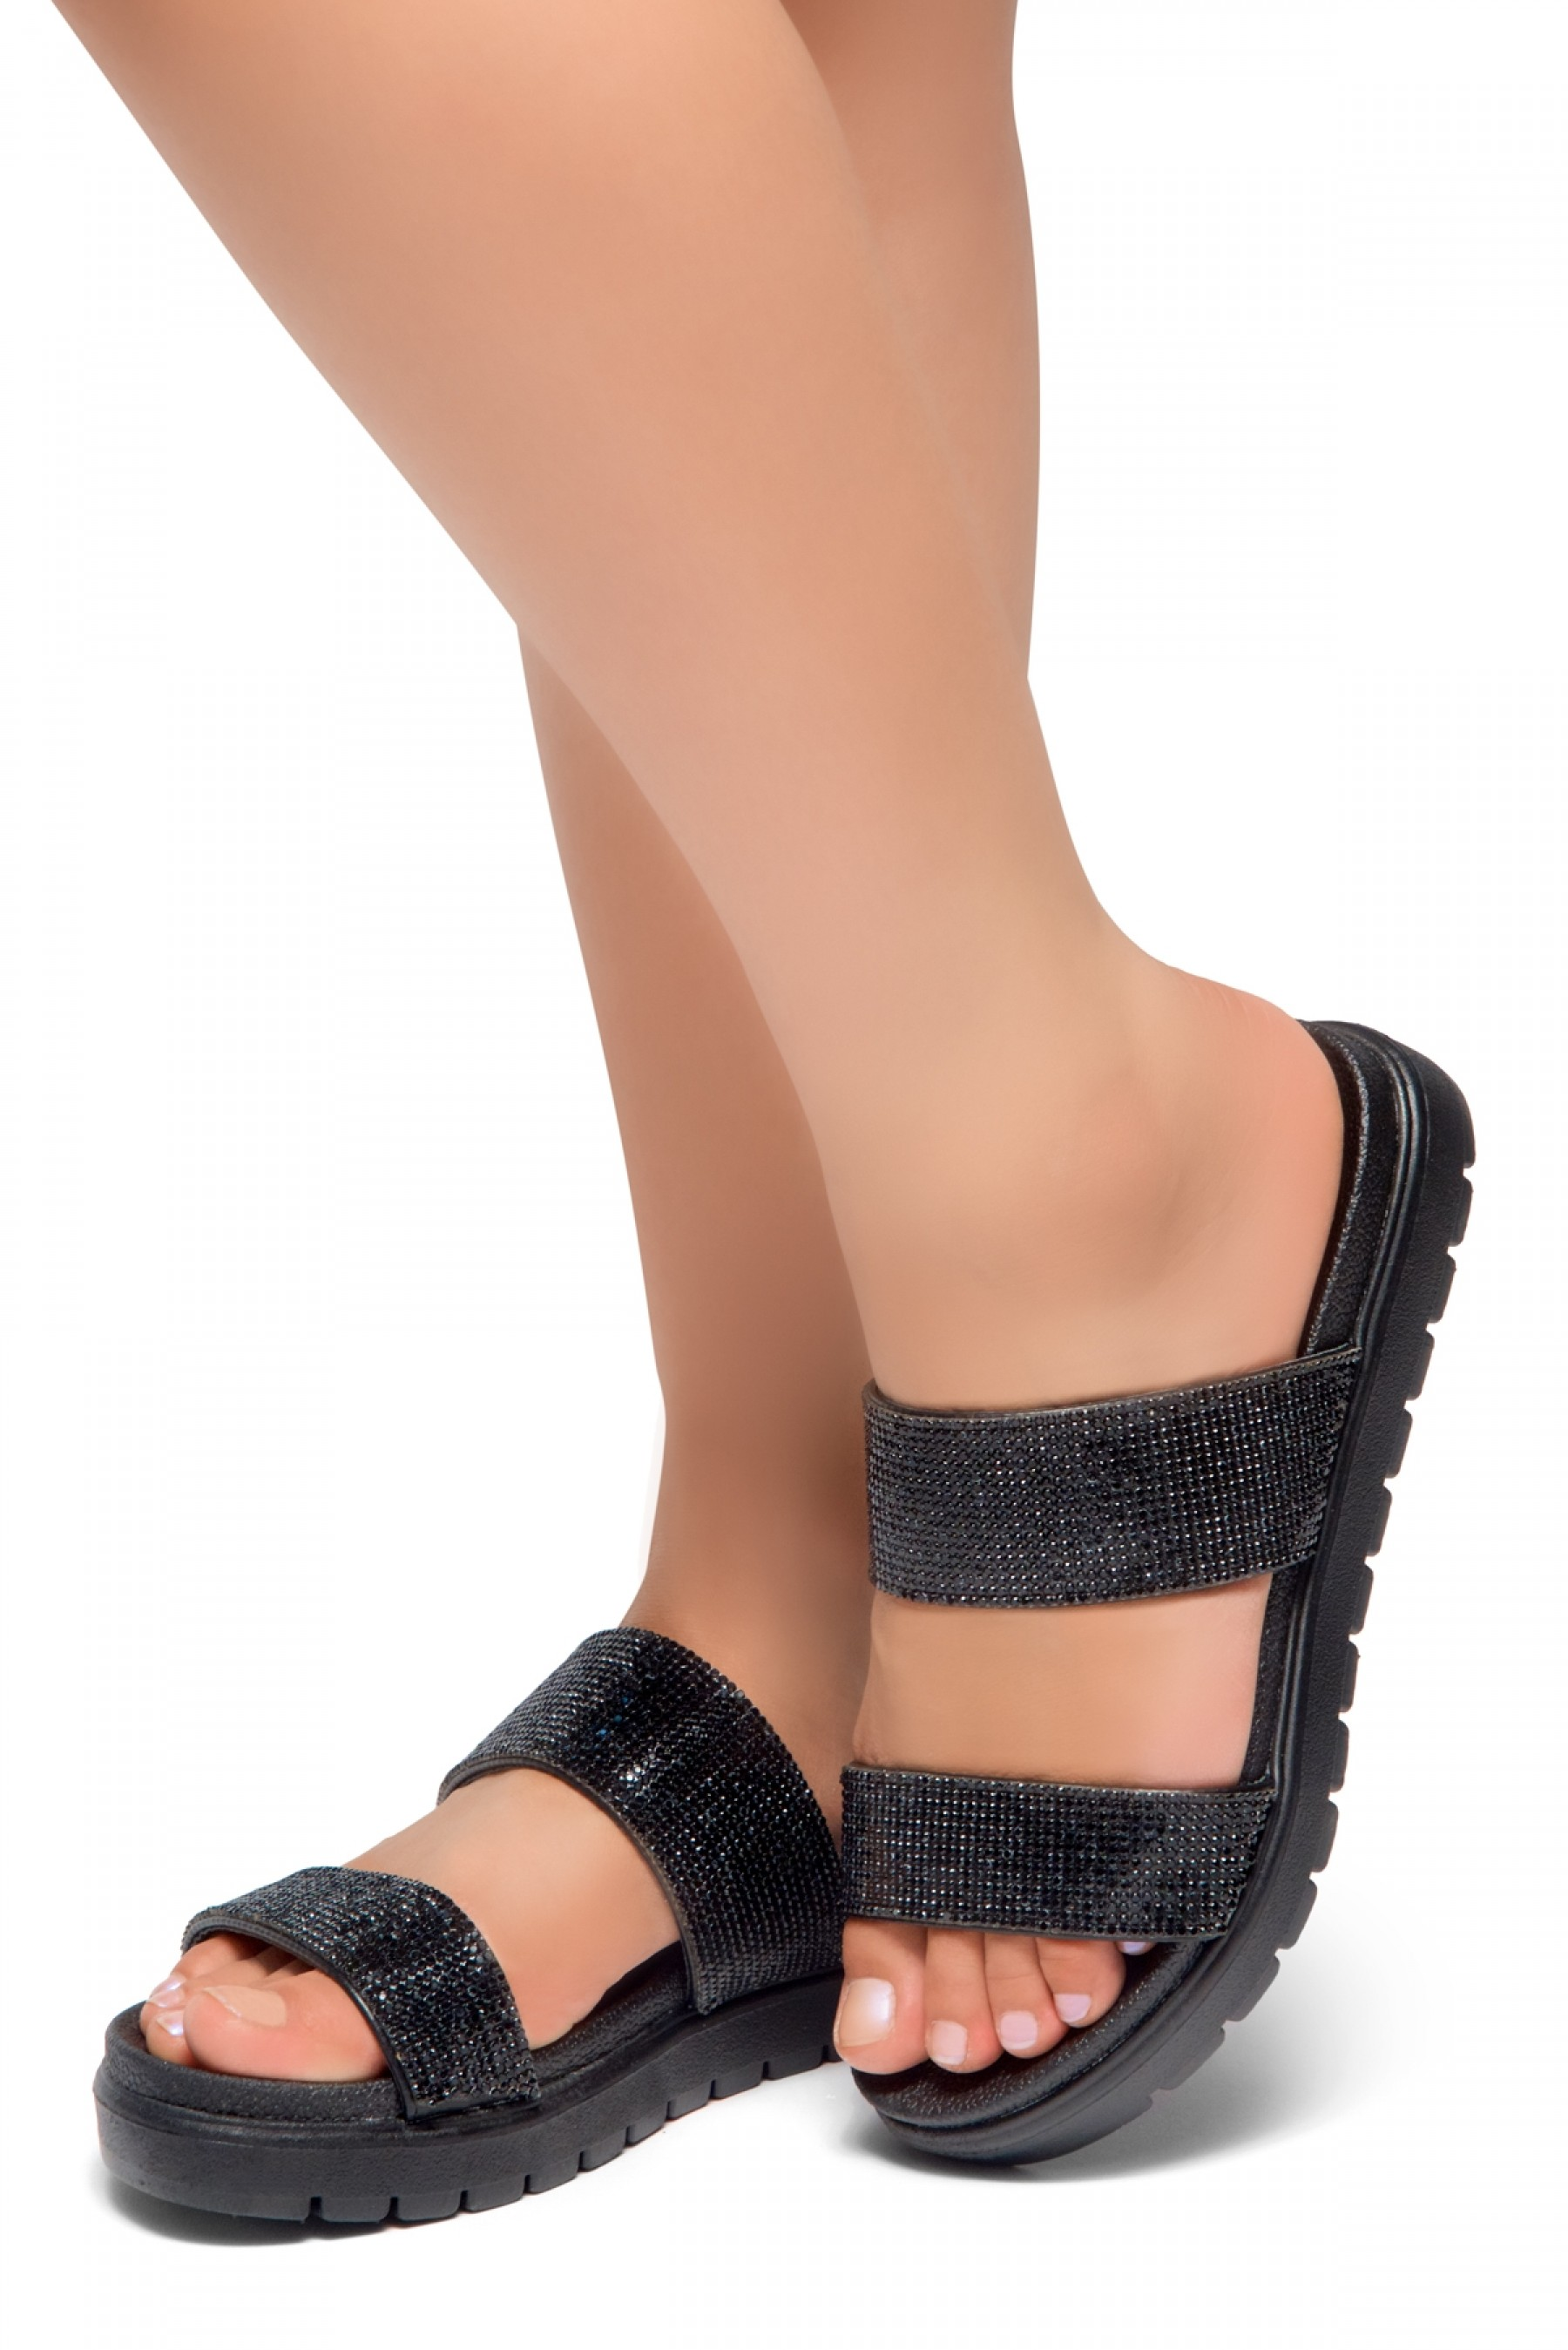 HerStyle Knock-Open Toe Jewelled Embellishment Slide Sandal (Black)